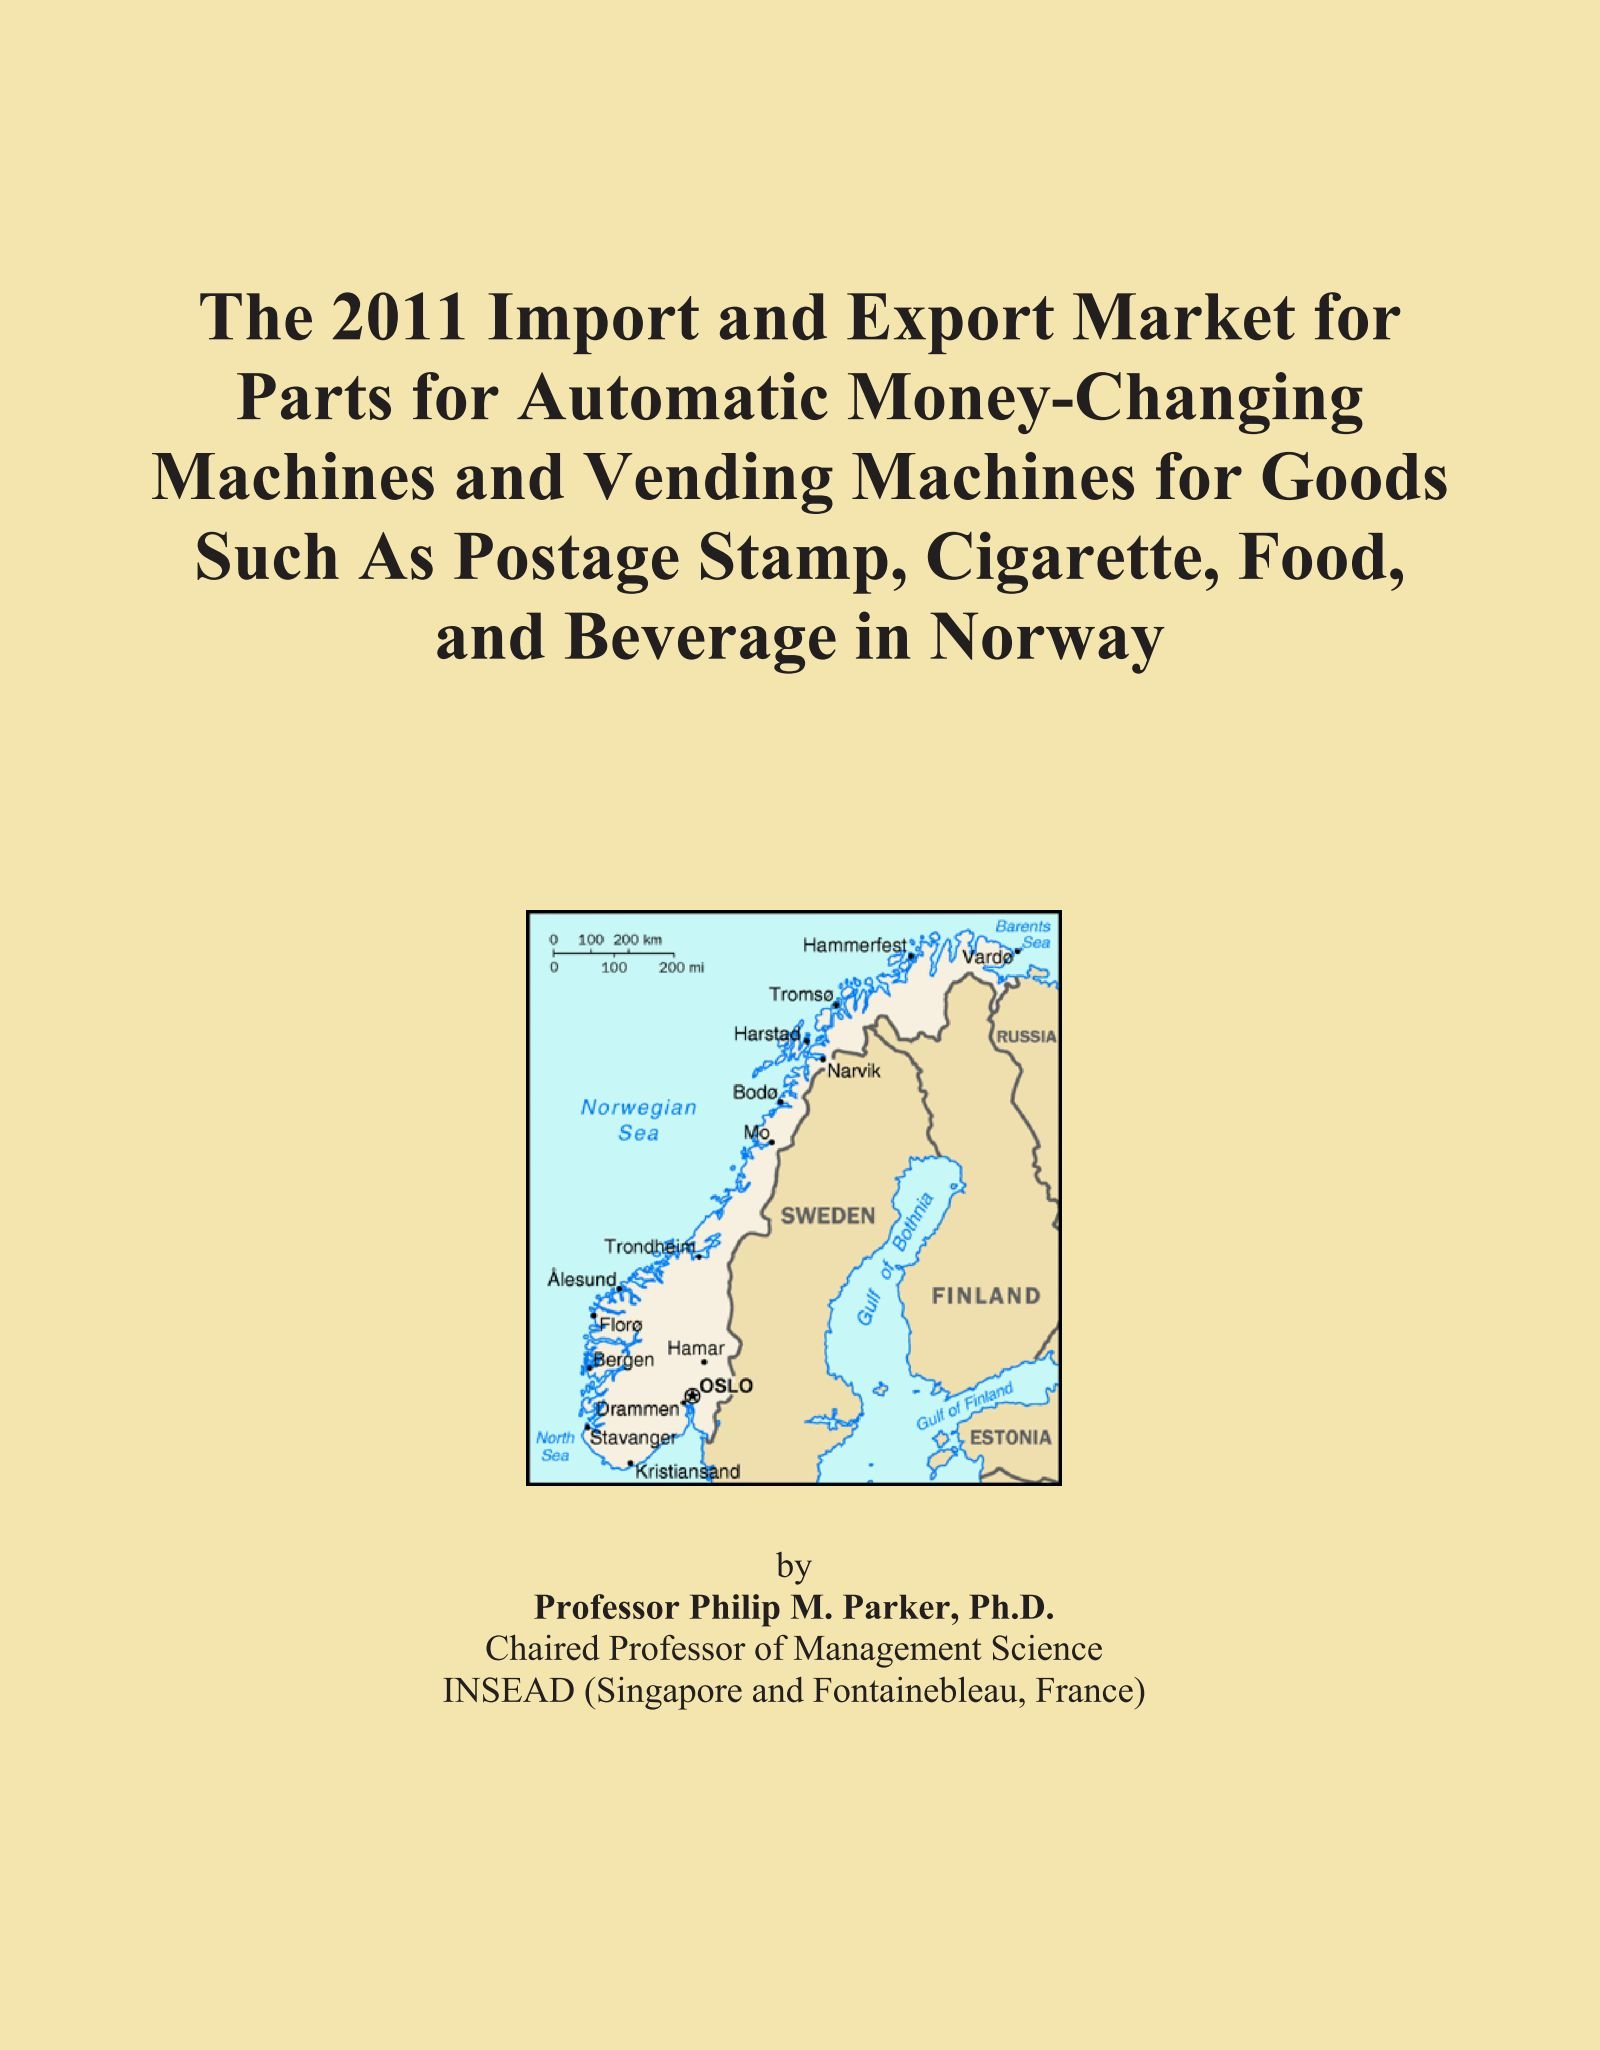 The 2011 Import and Export Market for Parts for Automatic Money-Changing Machines and Vending Machines for Goods Such As Postage Stamp, Cigarette, Food, and Beverage in Norway PDF